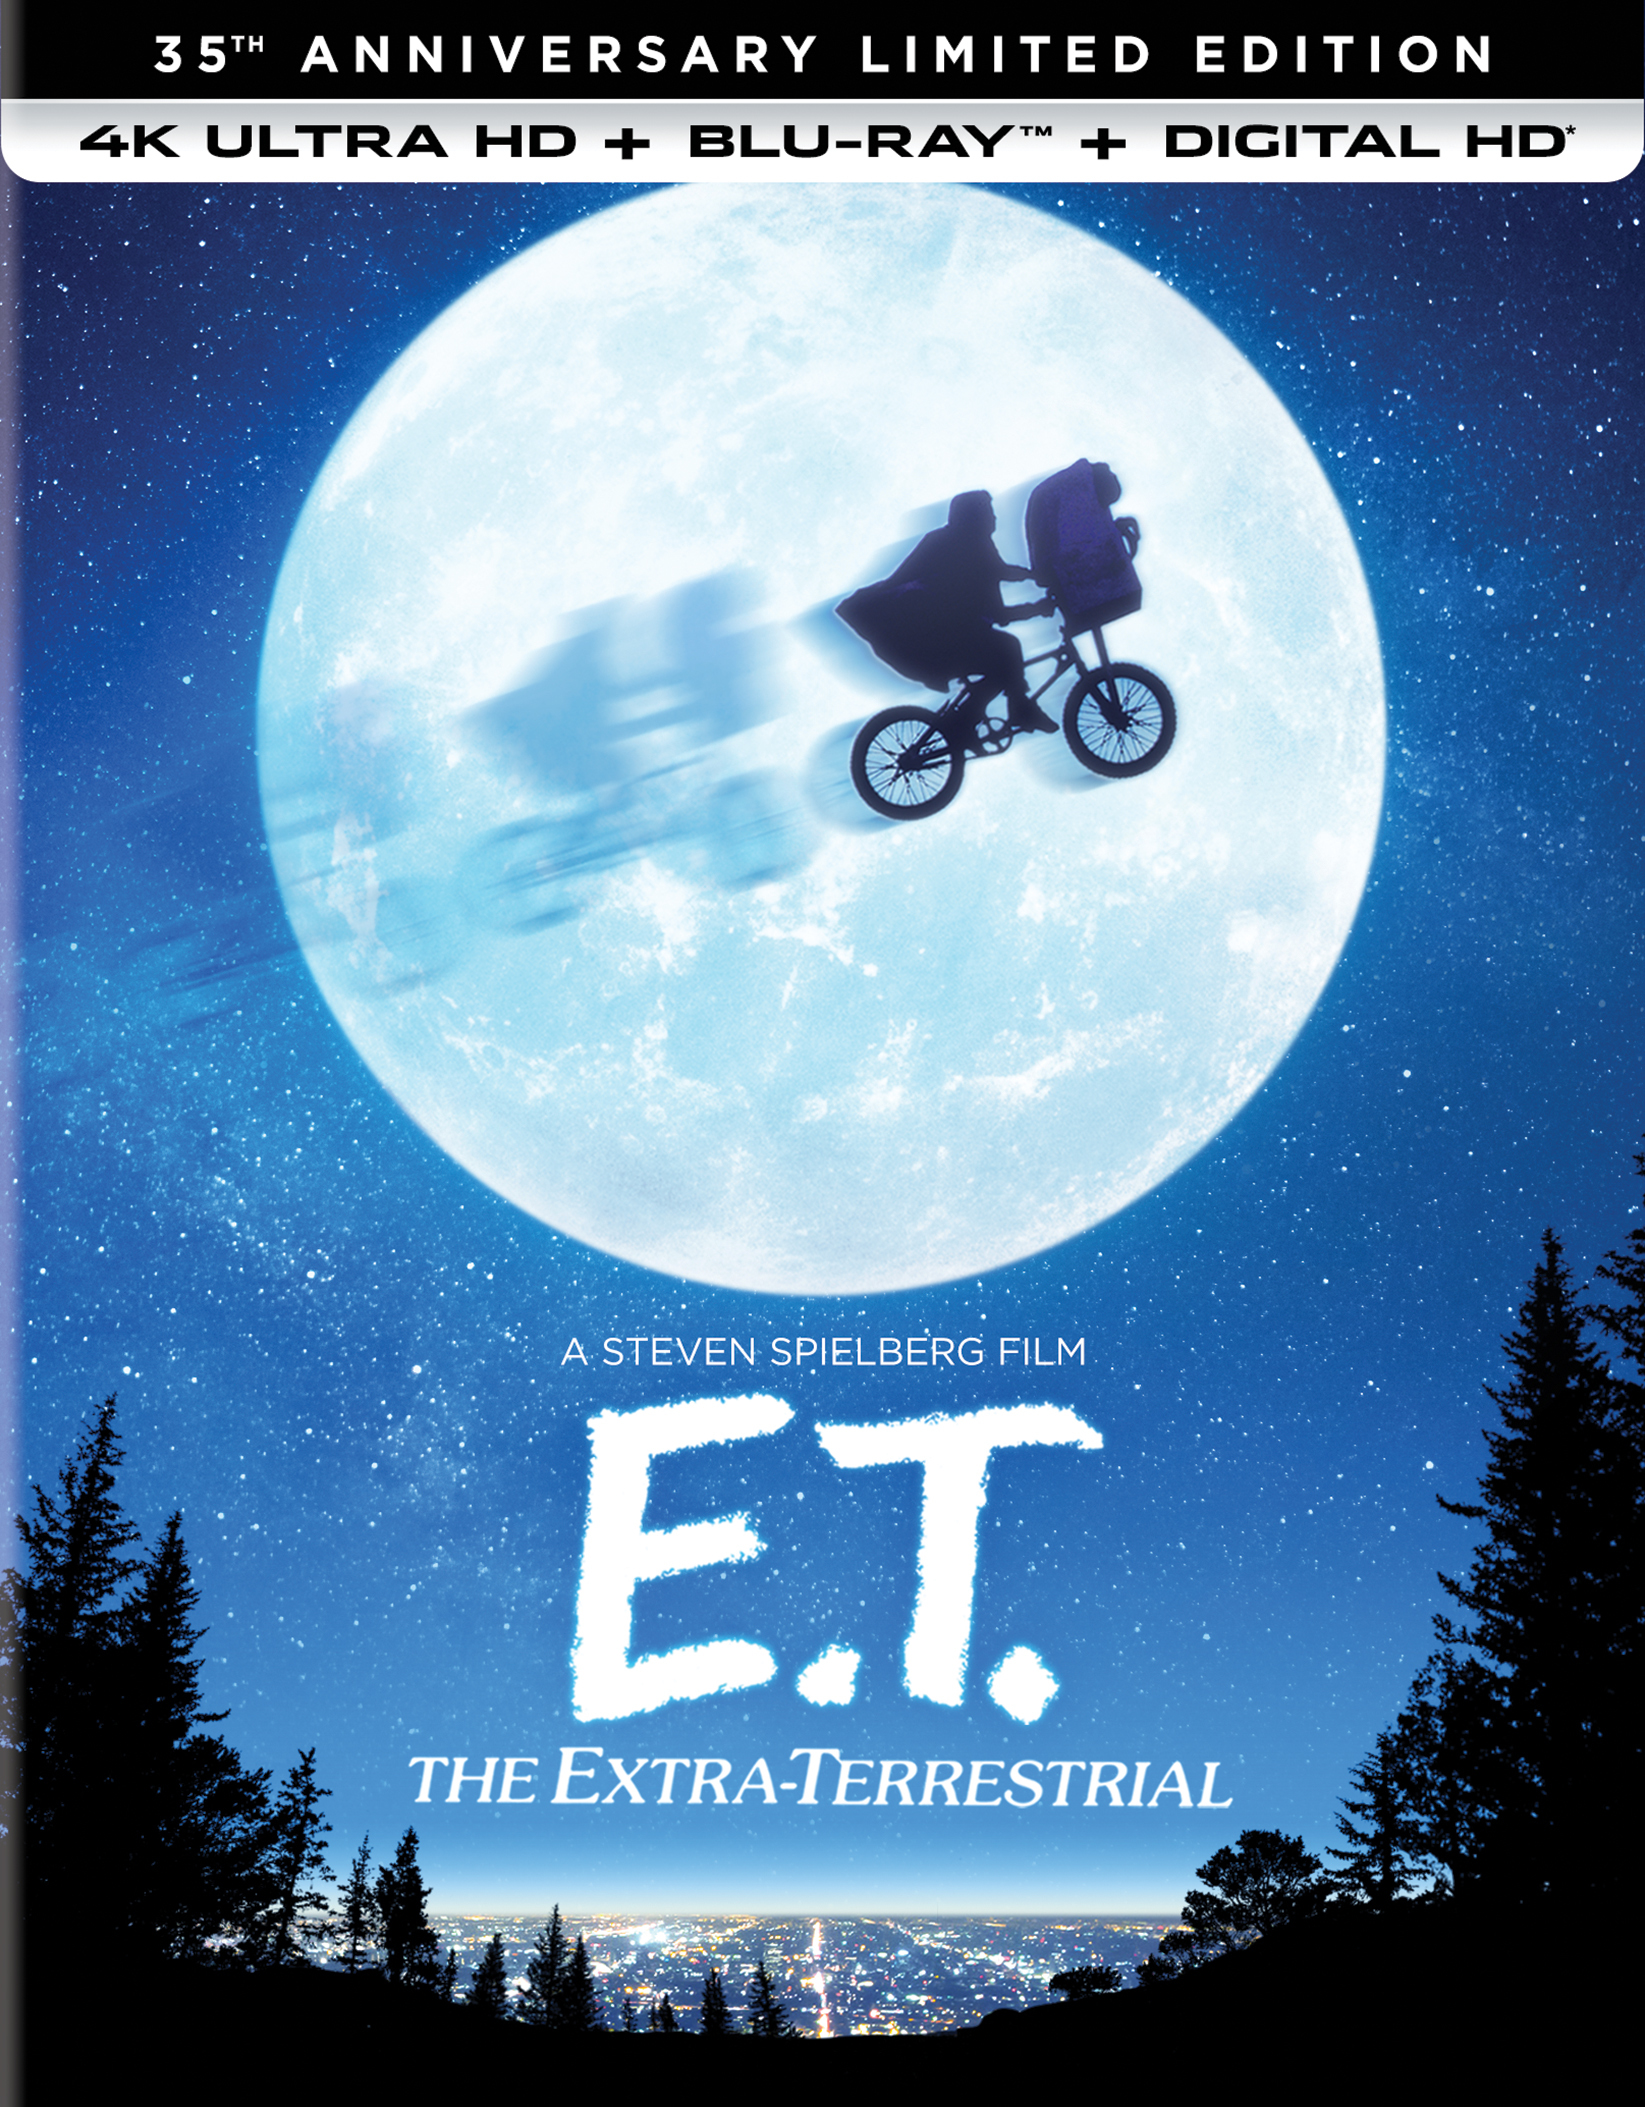 E.T.: The Extra-Terrestrial (1982) 35th Anniversary Limited Edition 4K Ultra HD Blu-ray